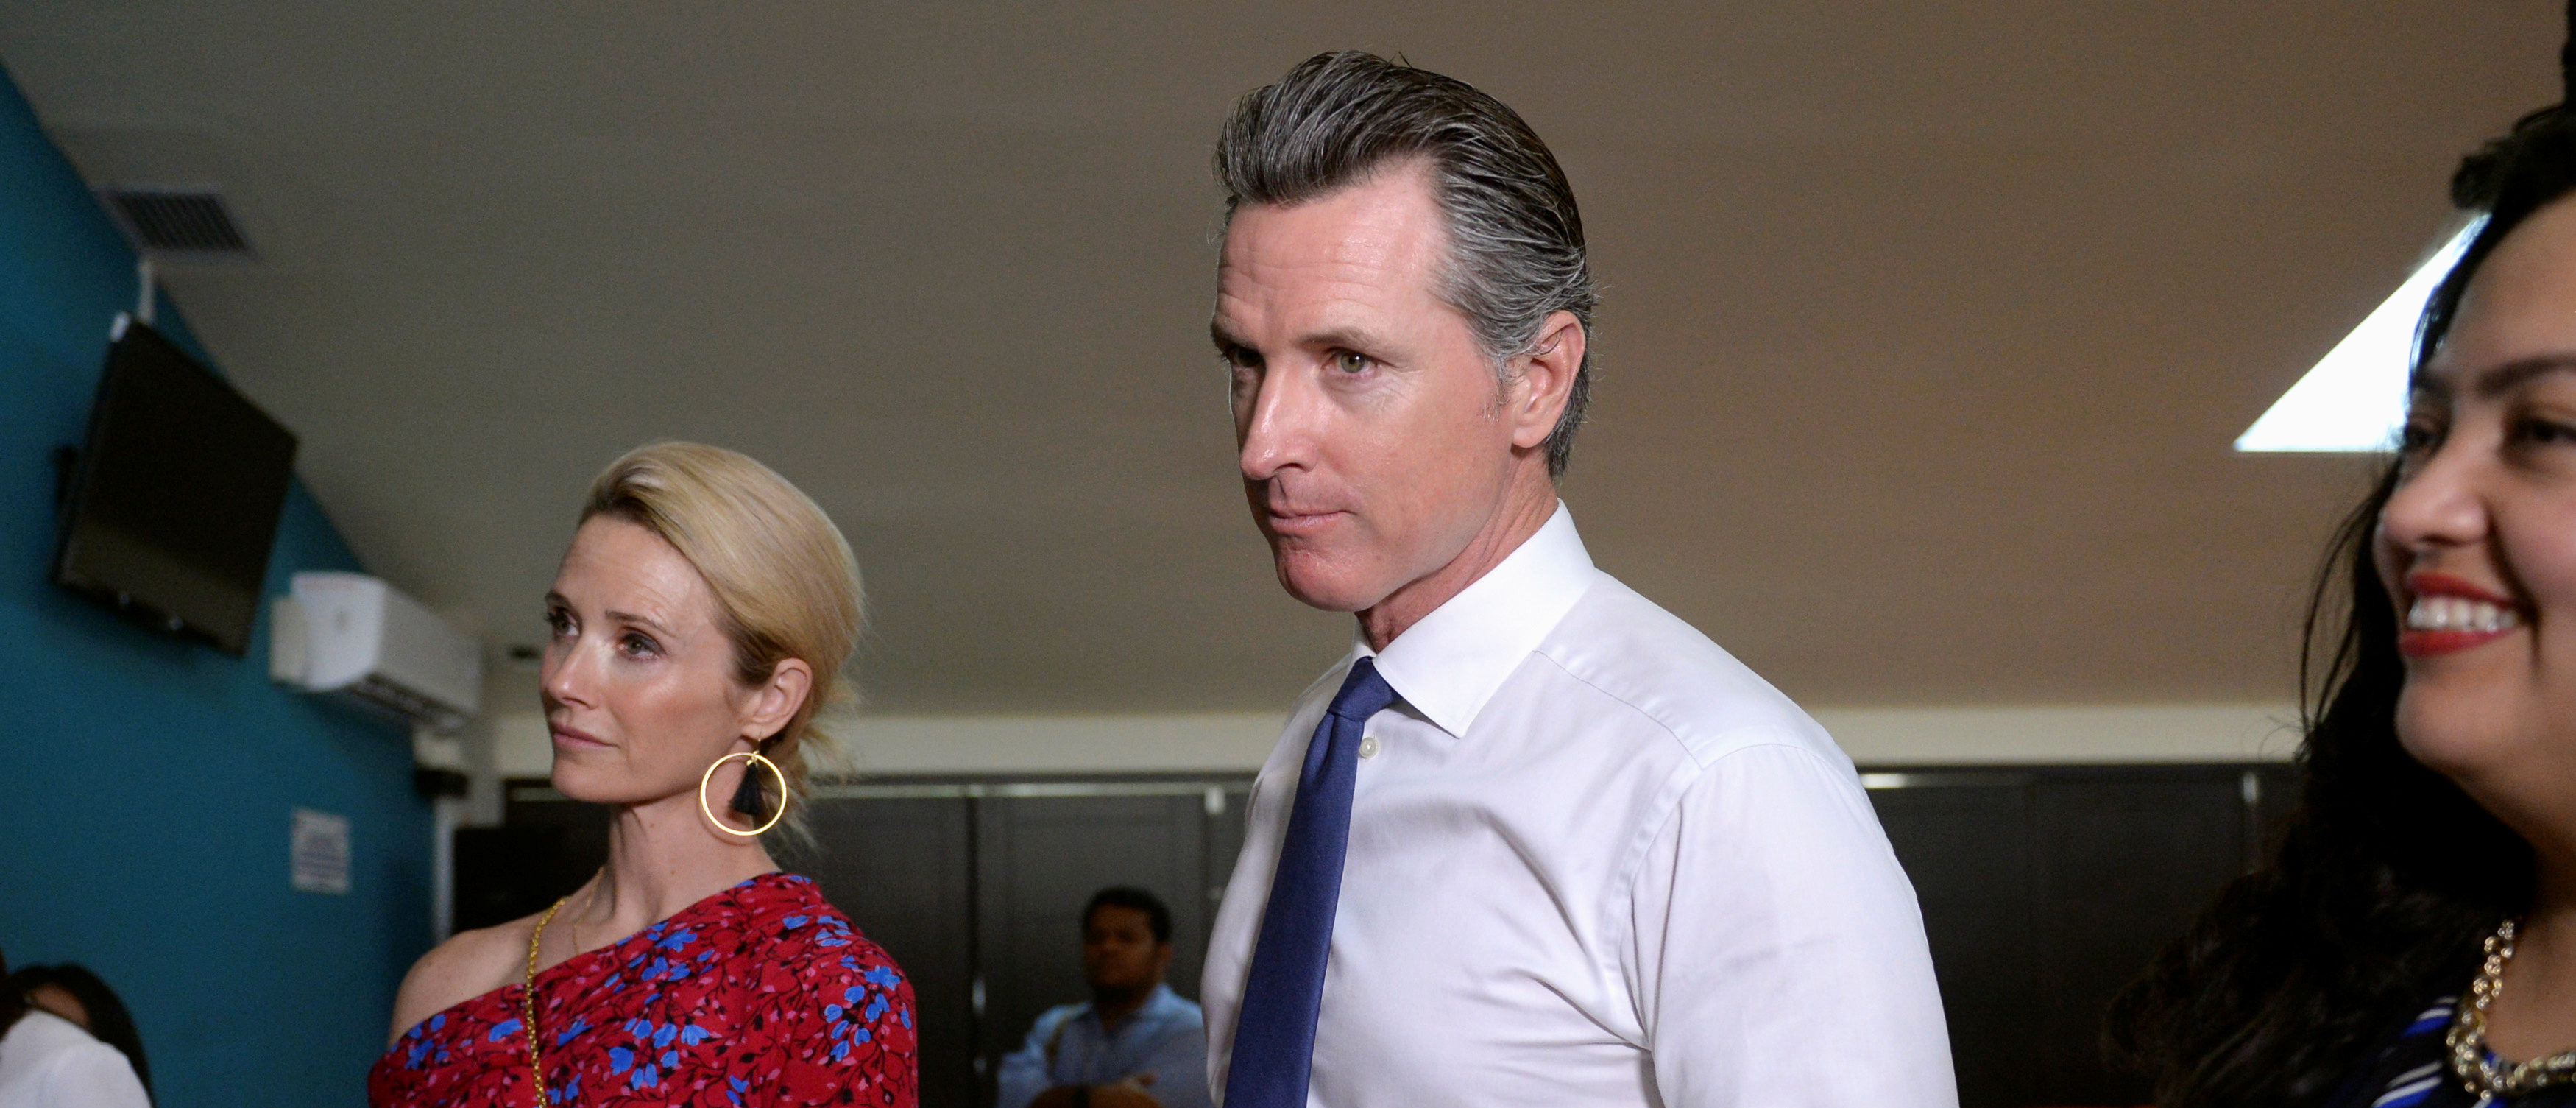 Governor of U.S. state of California Gavin Newsom and his wife Jennifer Siebel Newsom visit the premises of a migrant assistance office in San Salvador, El Salvador April 8, 2019. REUTERS/Jessica Orellana.